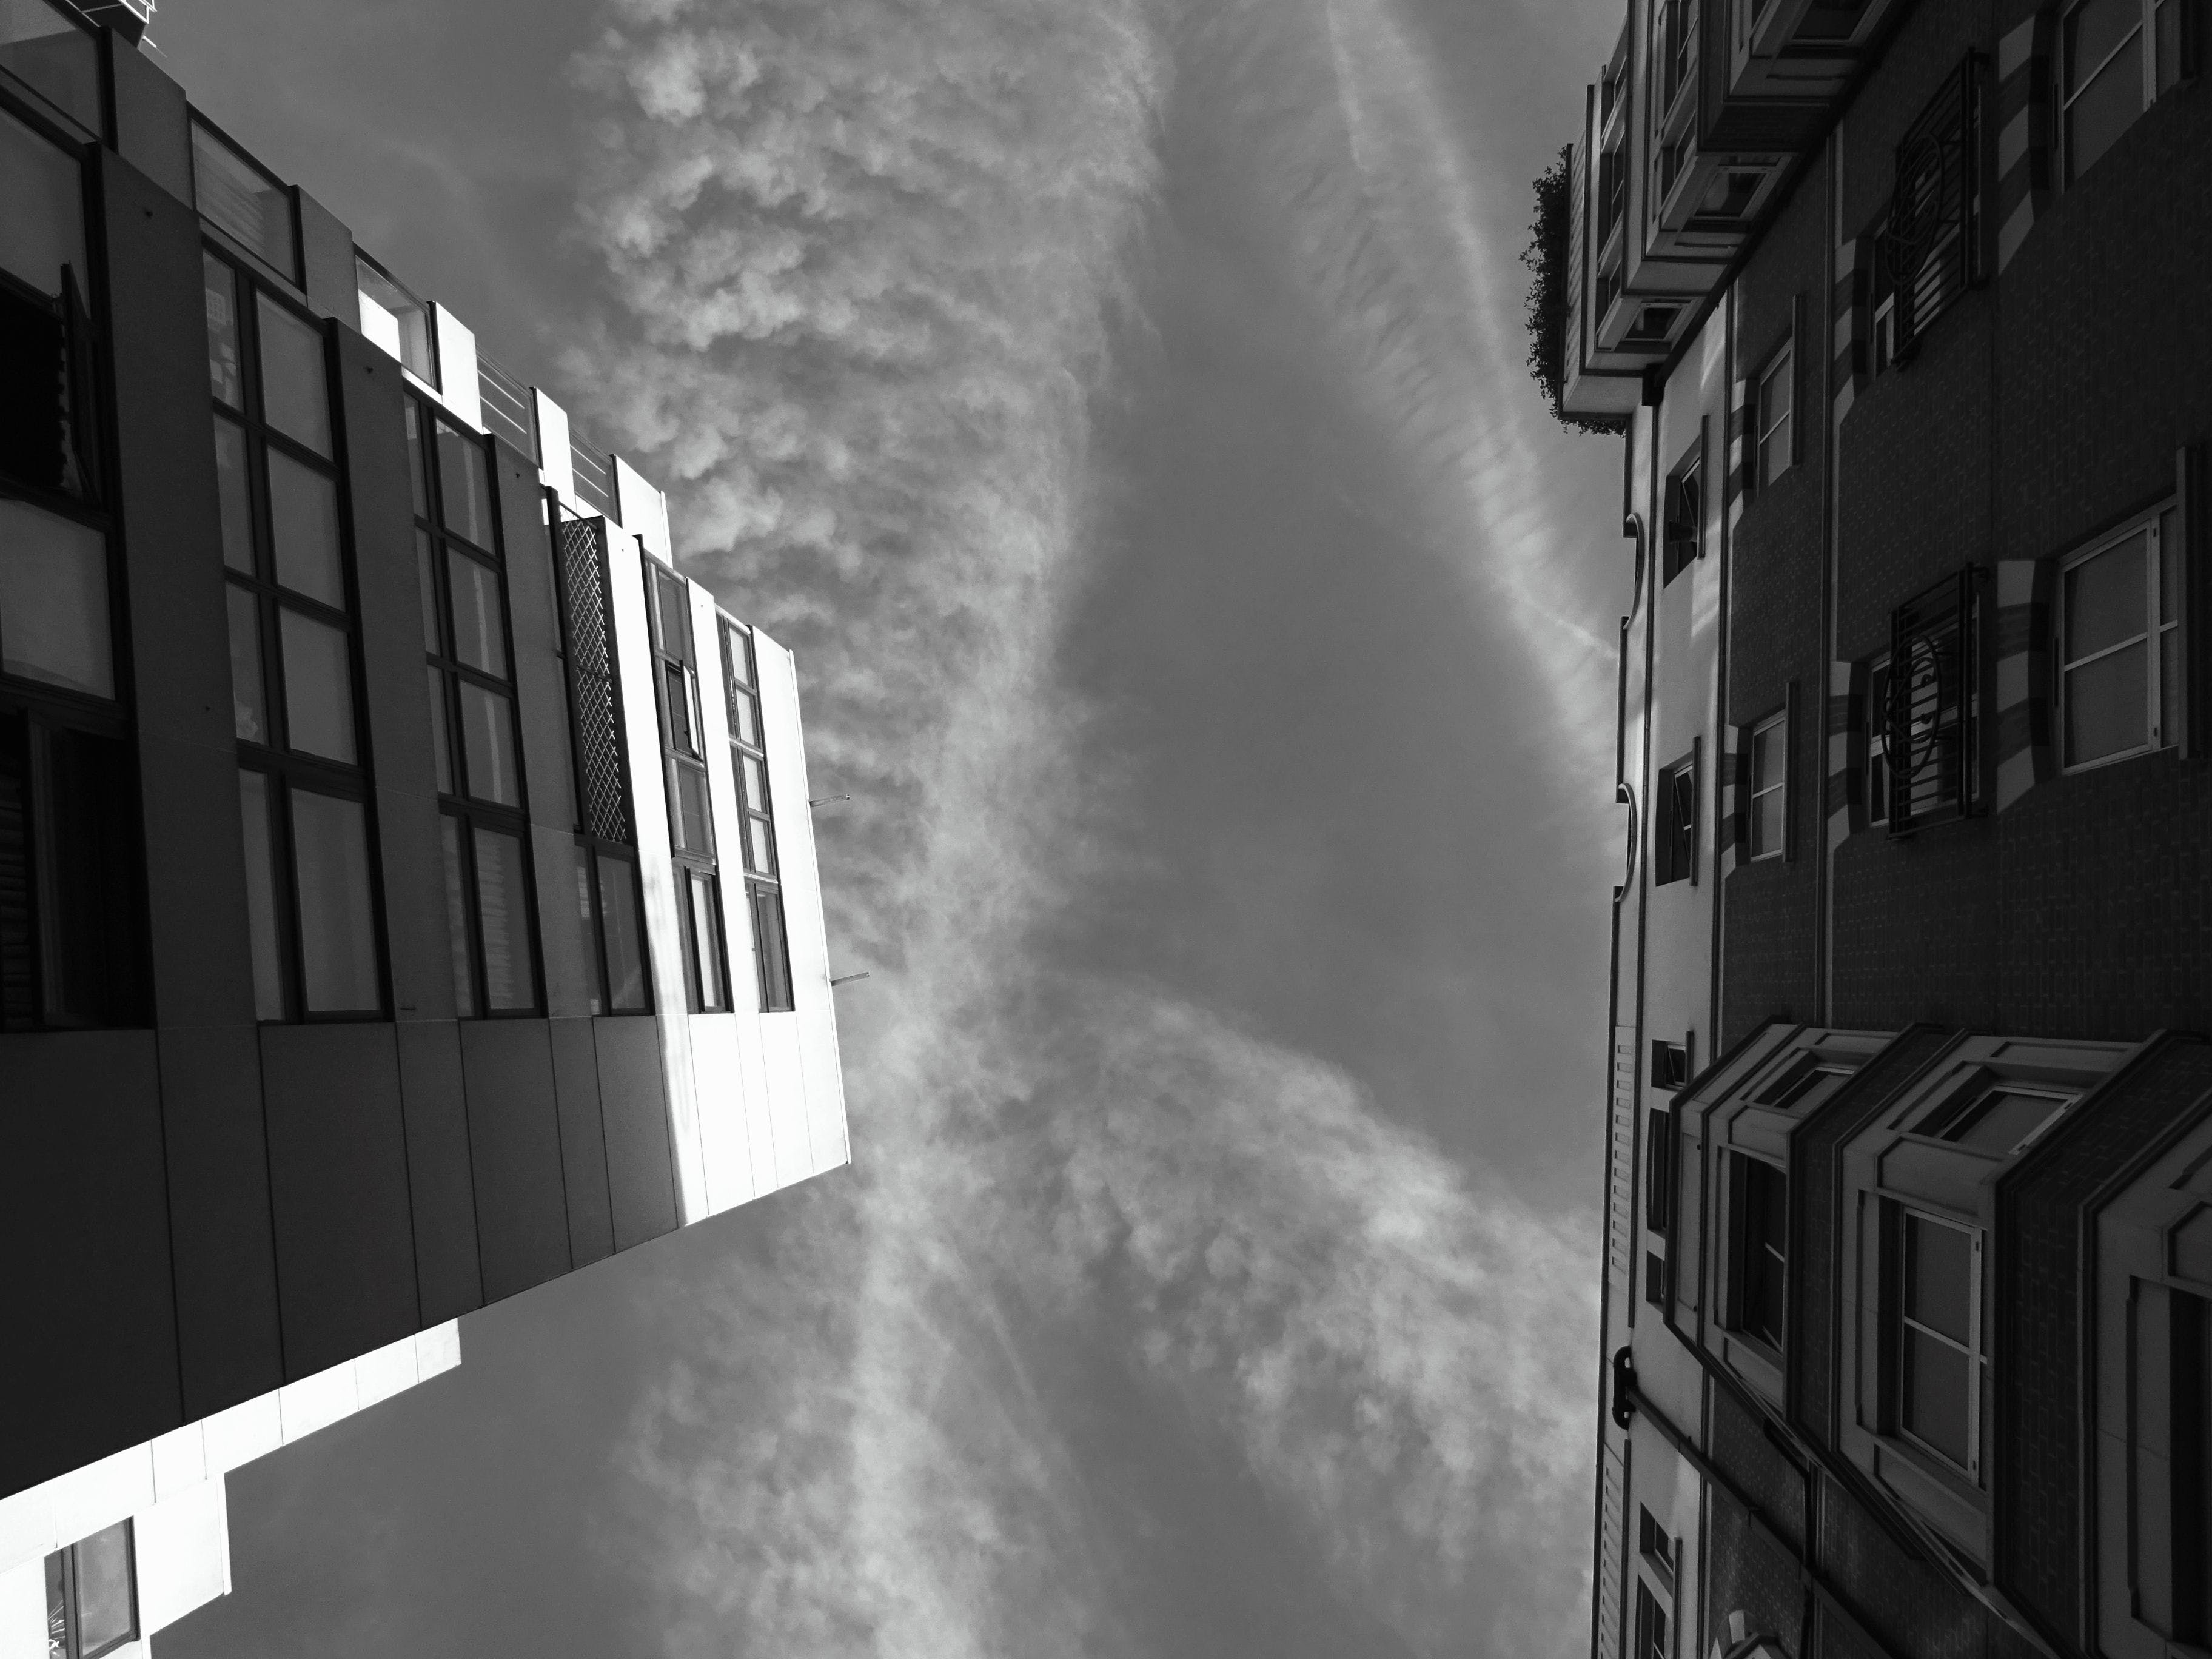 Grayscale Photo of Building's Worm's Eye View